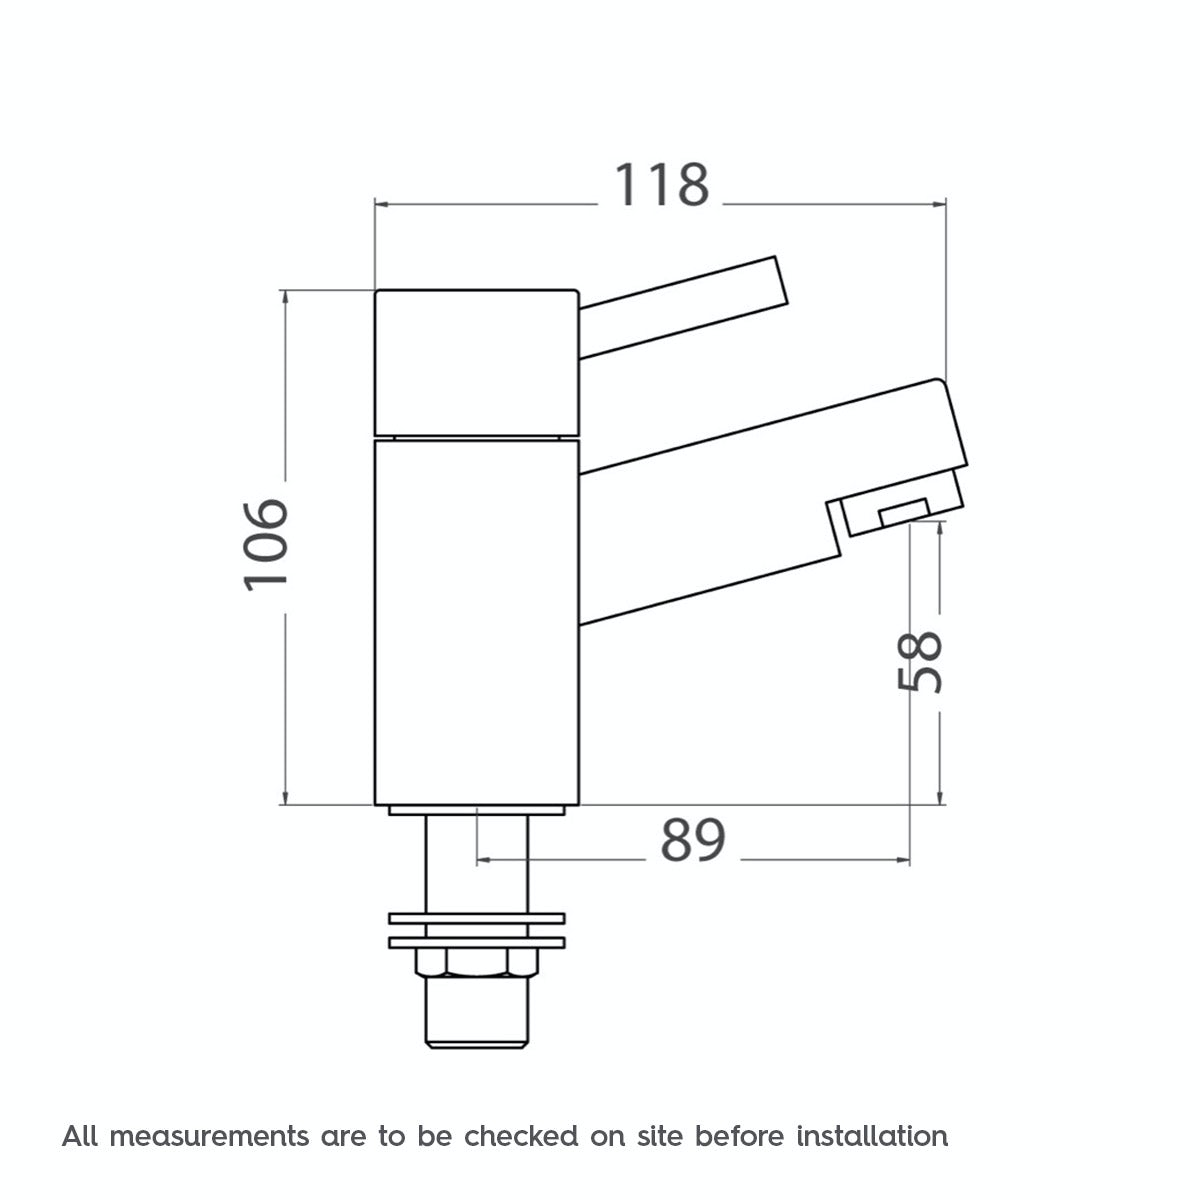 Dimensions for Orchard Matrix basin pillar taps